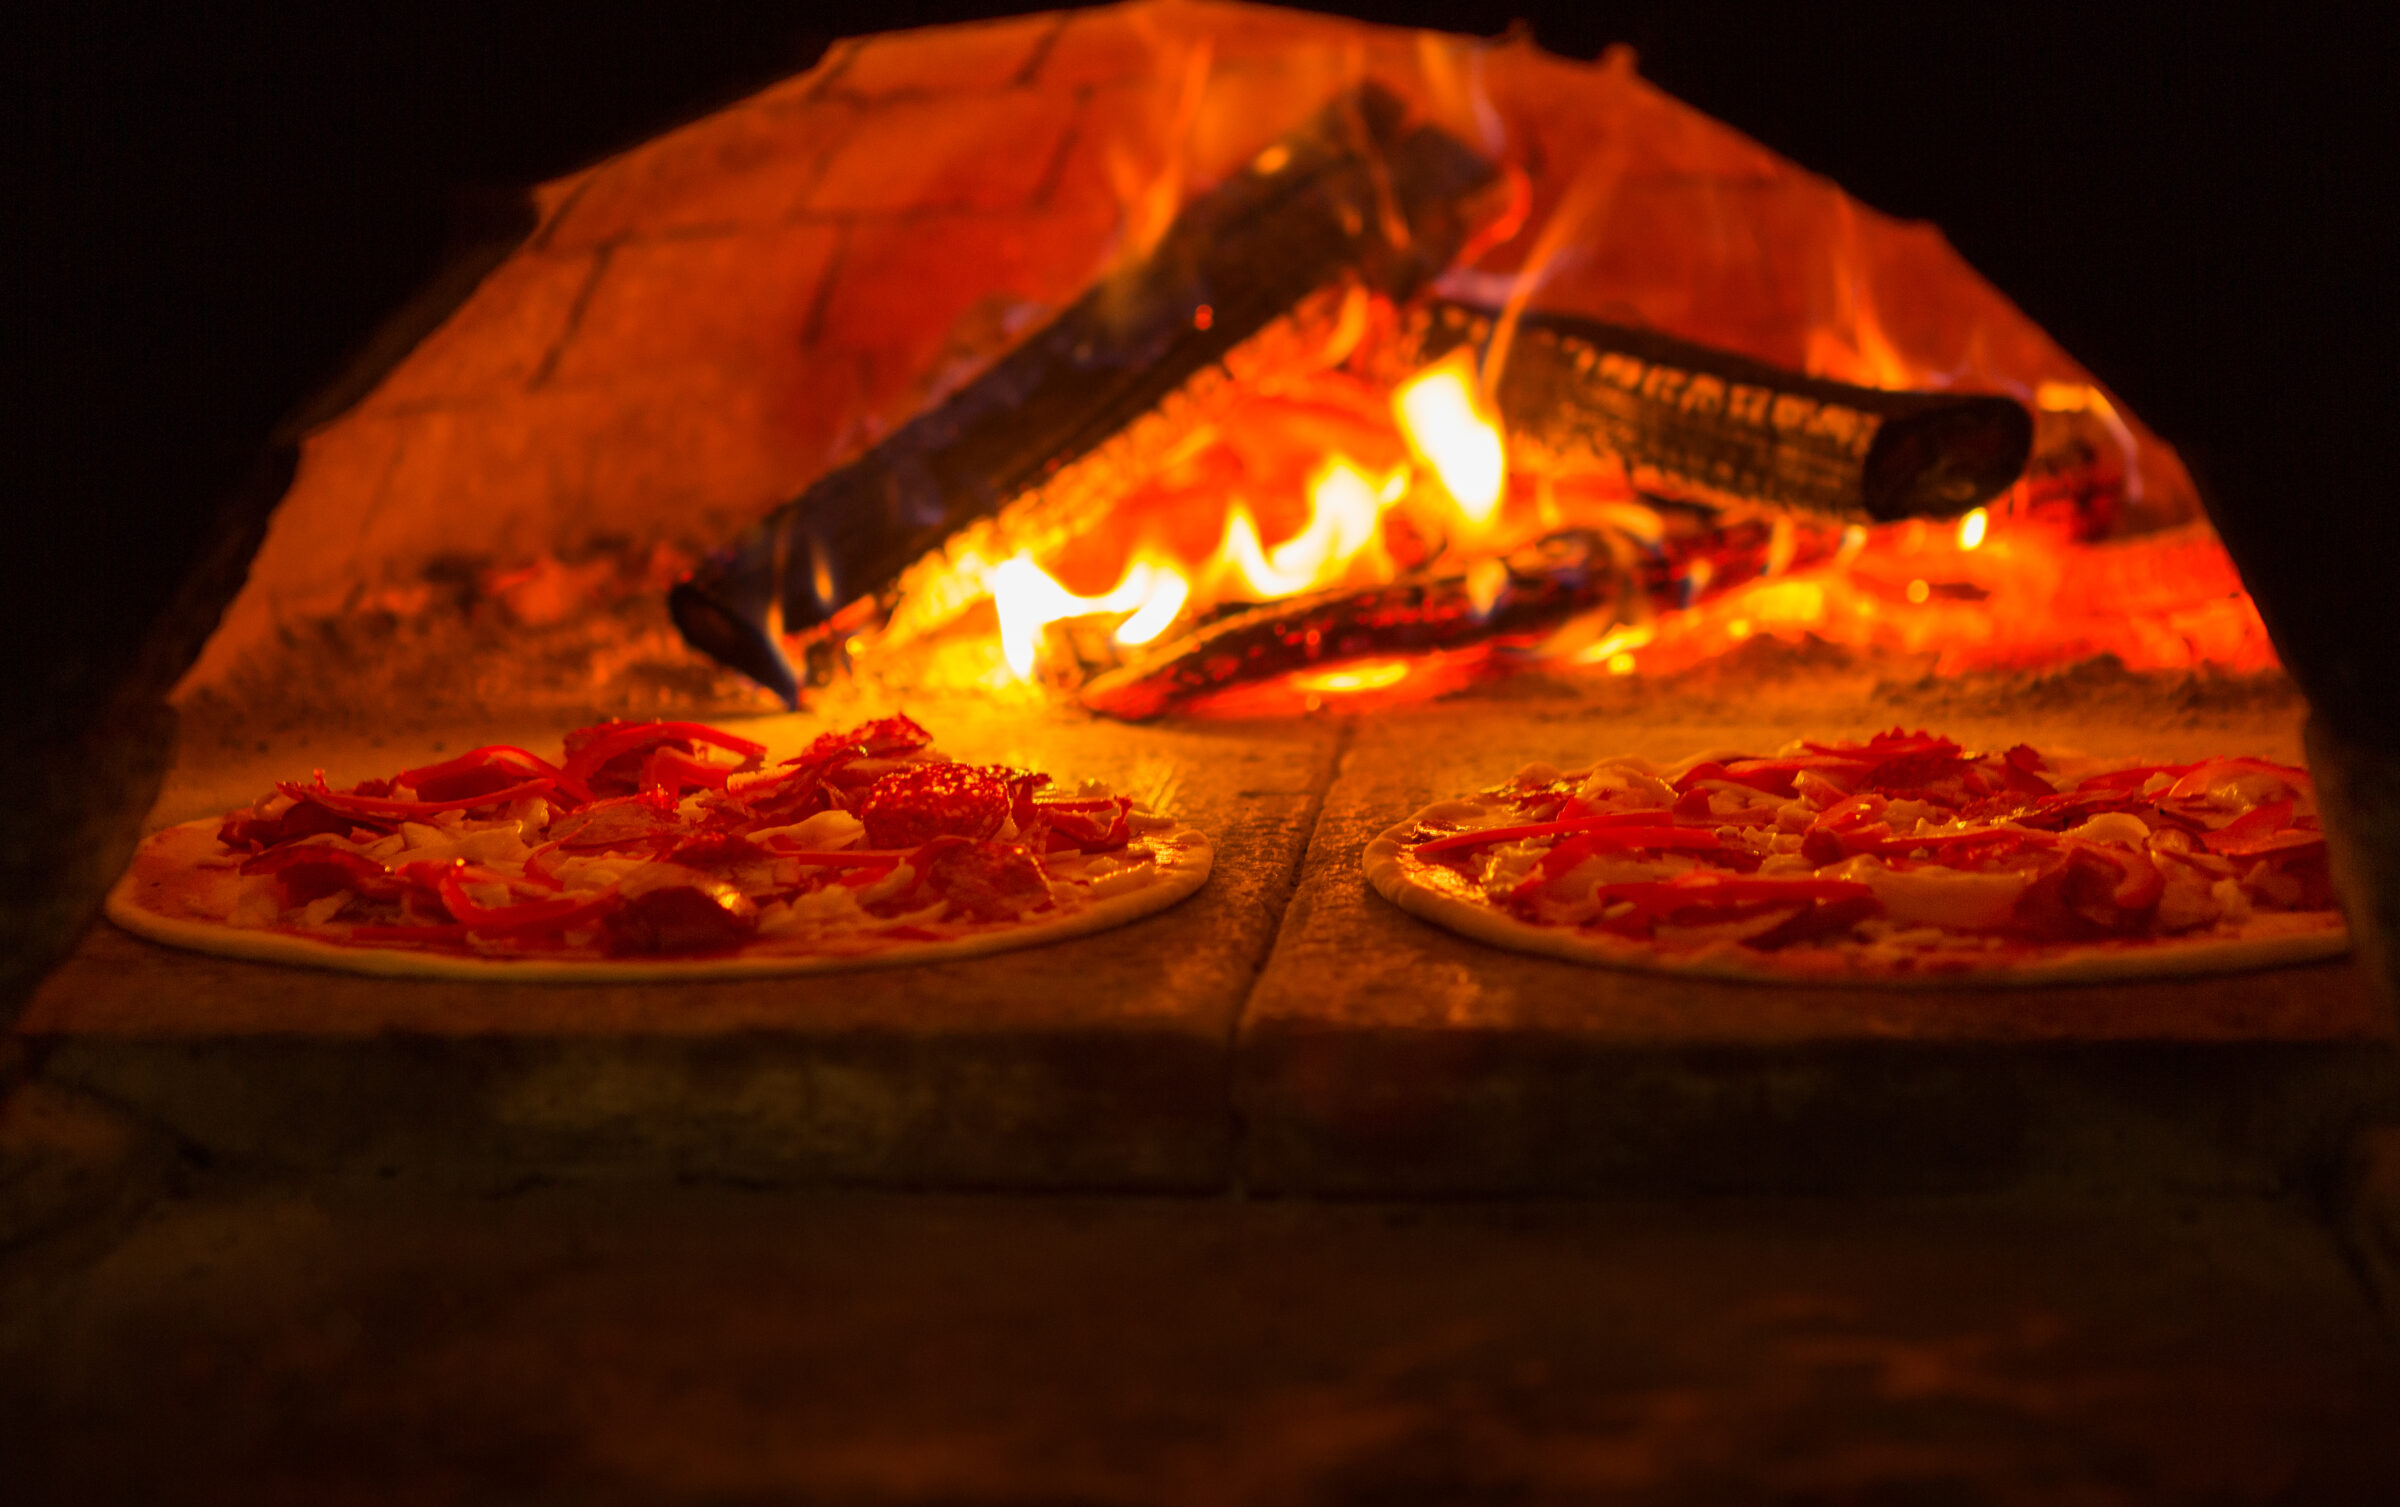 Italian pizza is cooked in wood fired oven